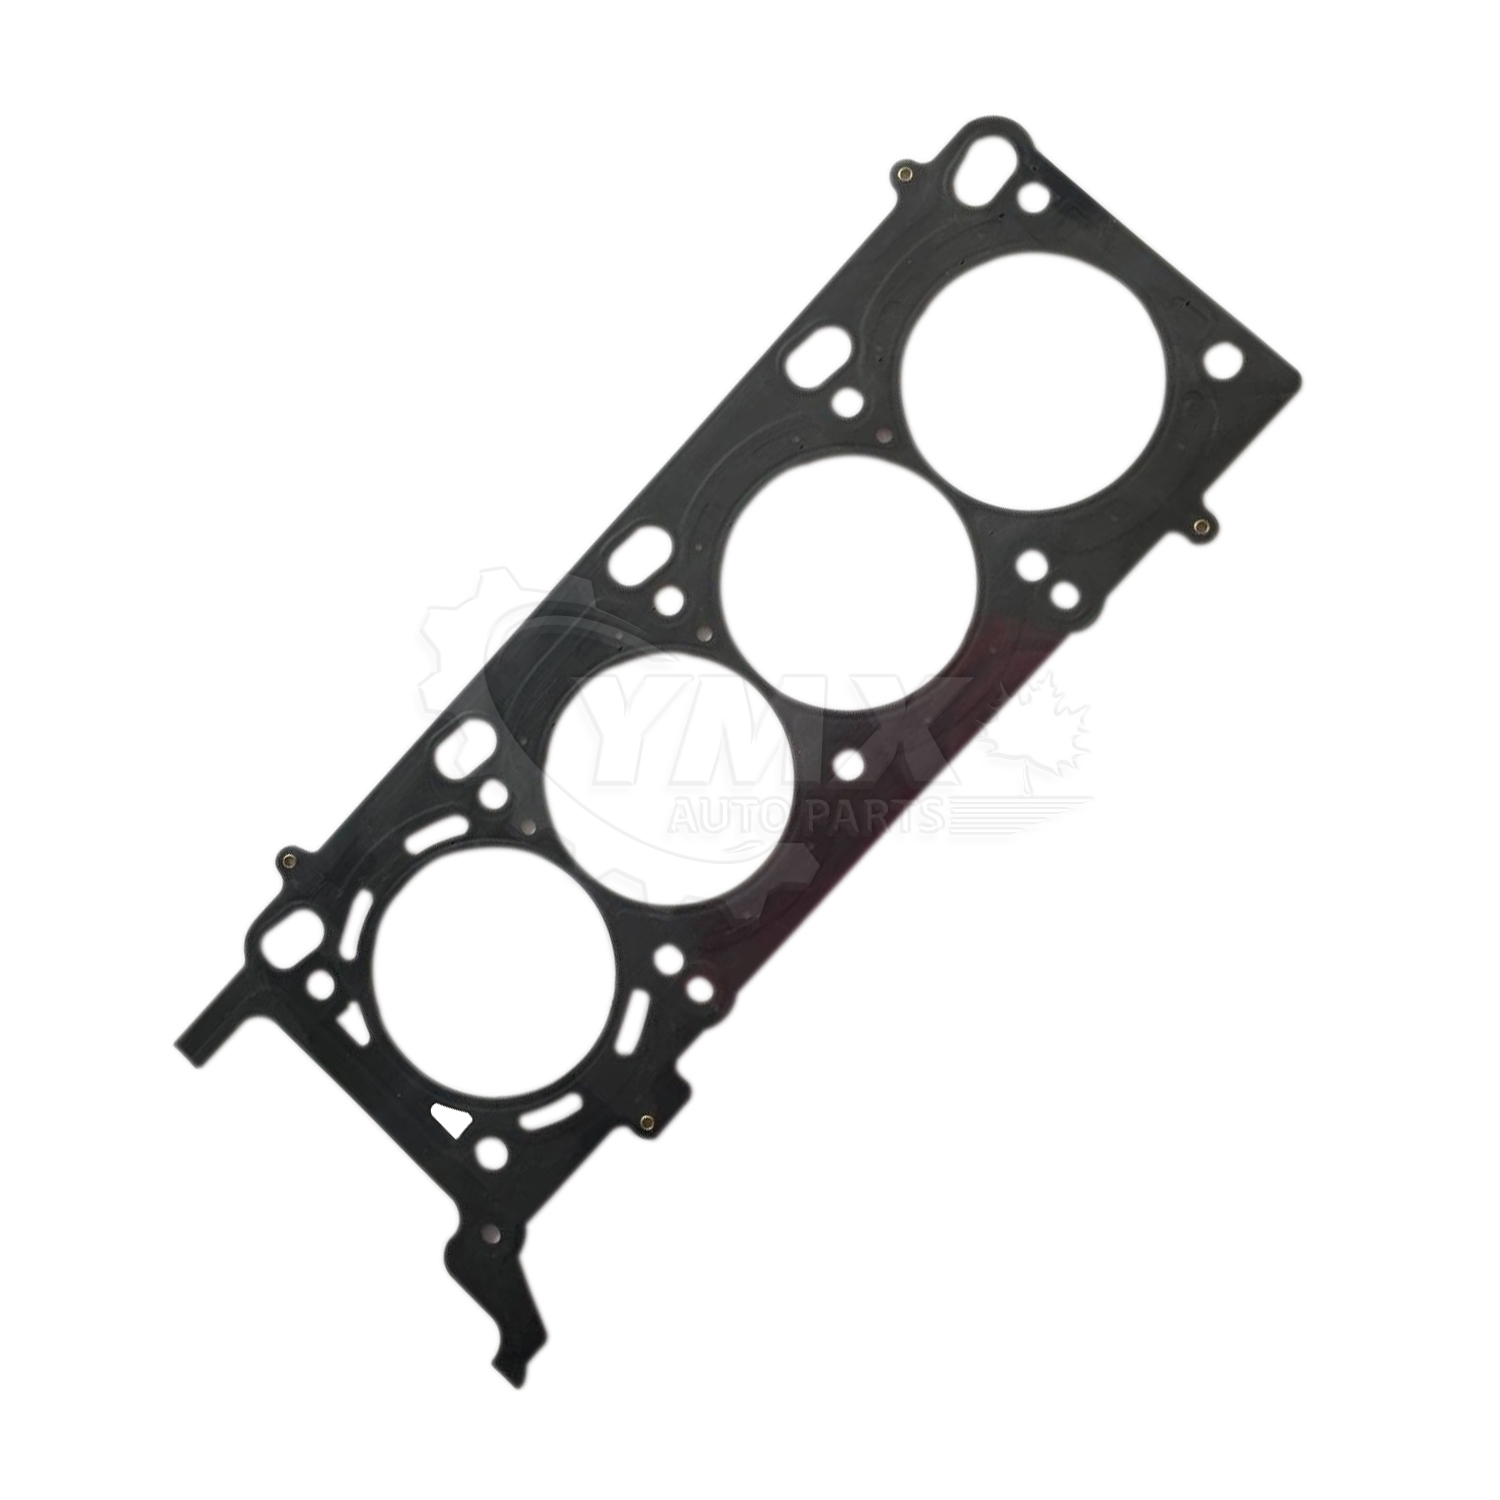 New Land Rover Range Rover RIGHT Cylinder Head Gasket 2003 2004